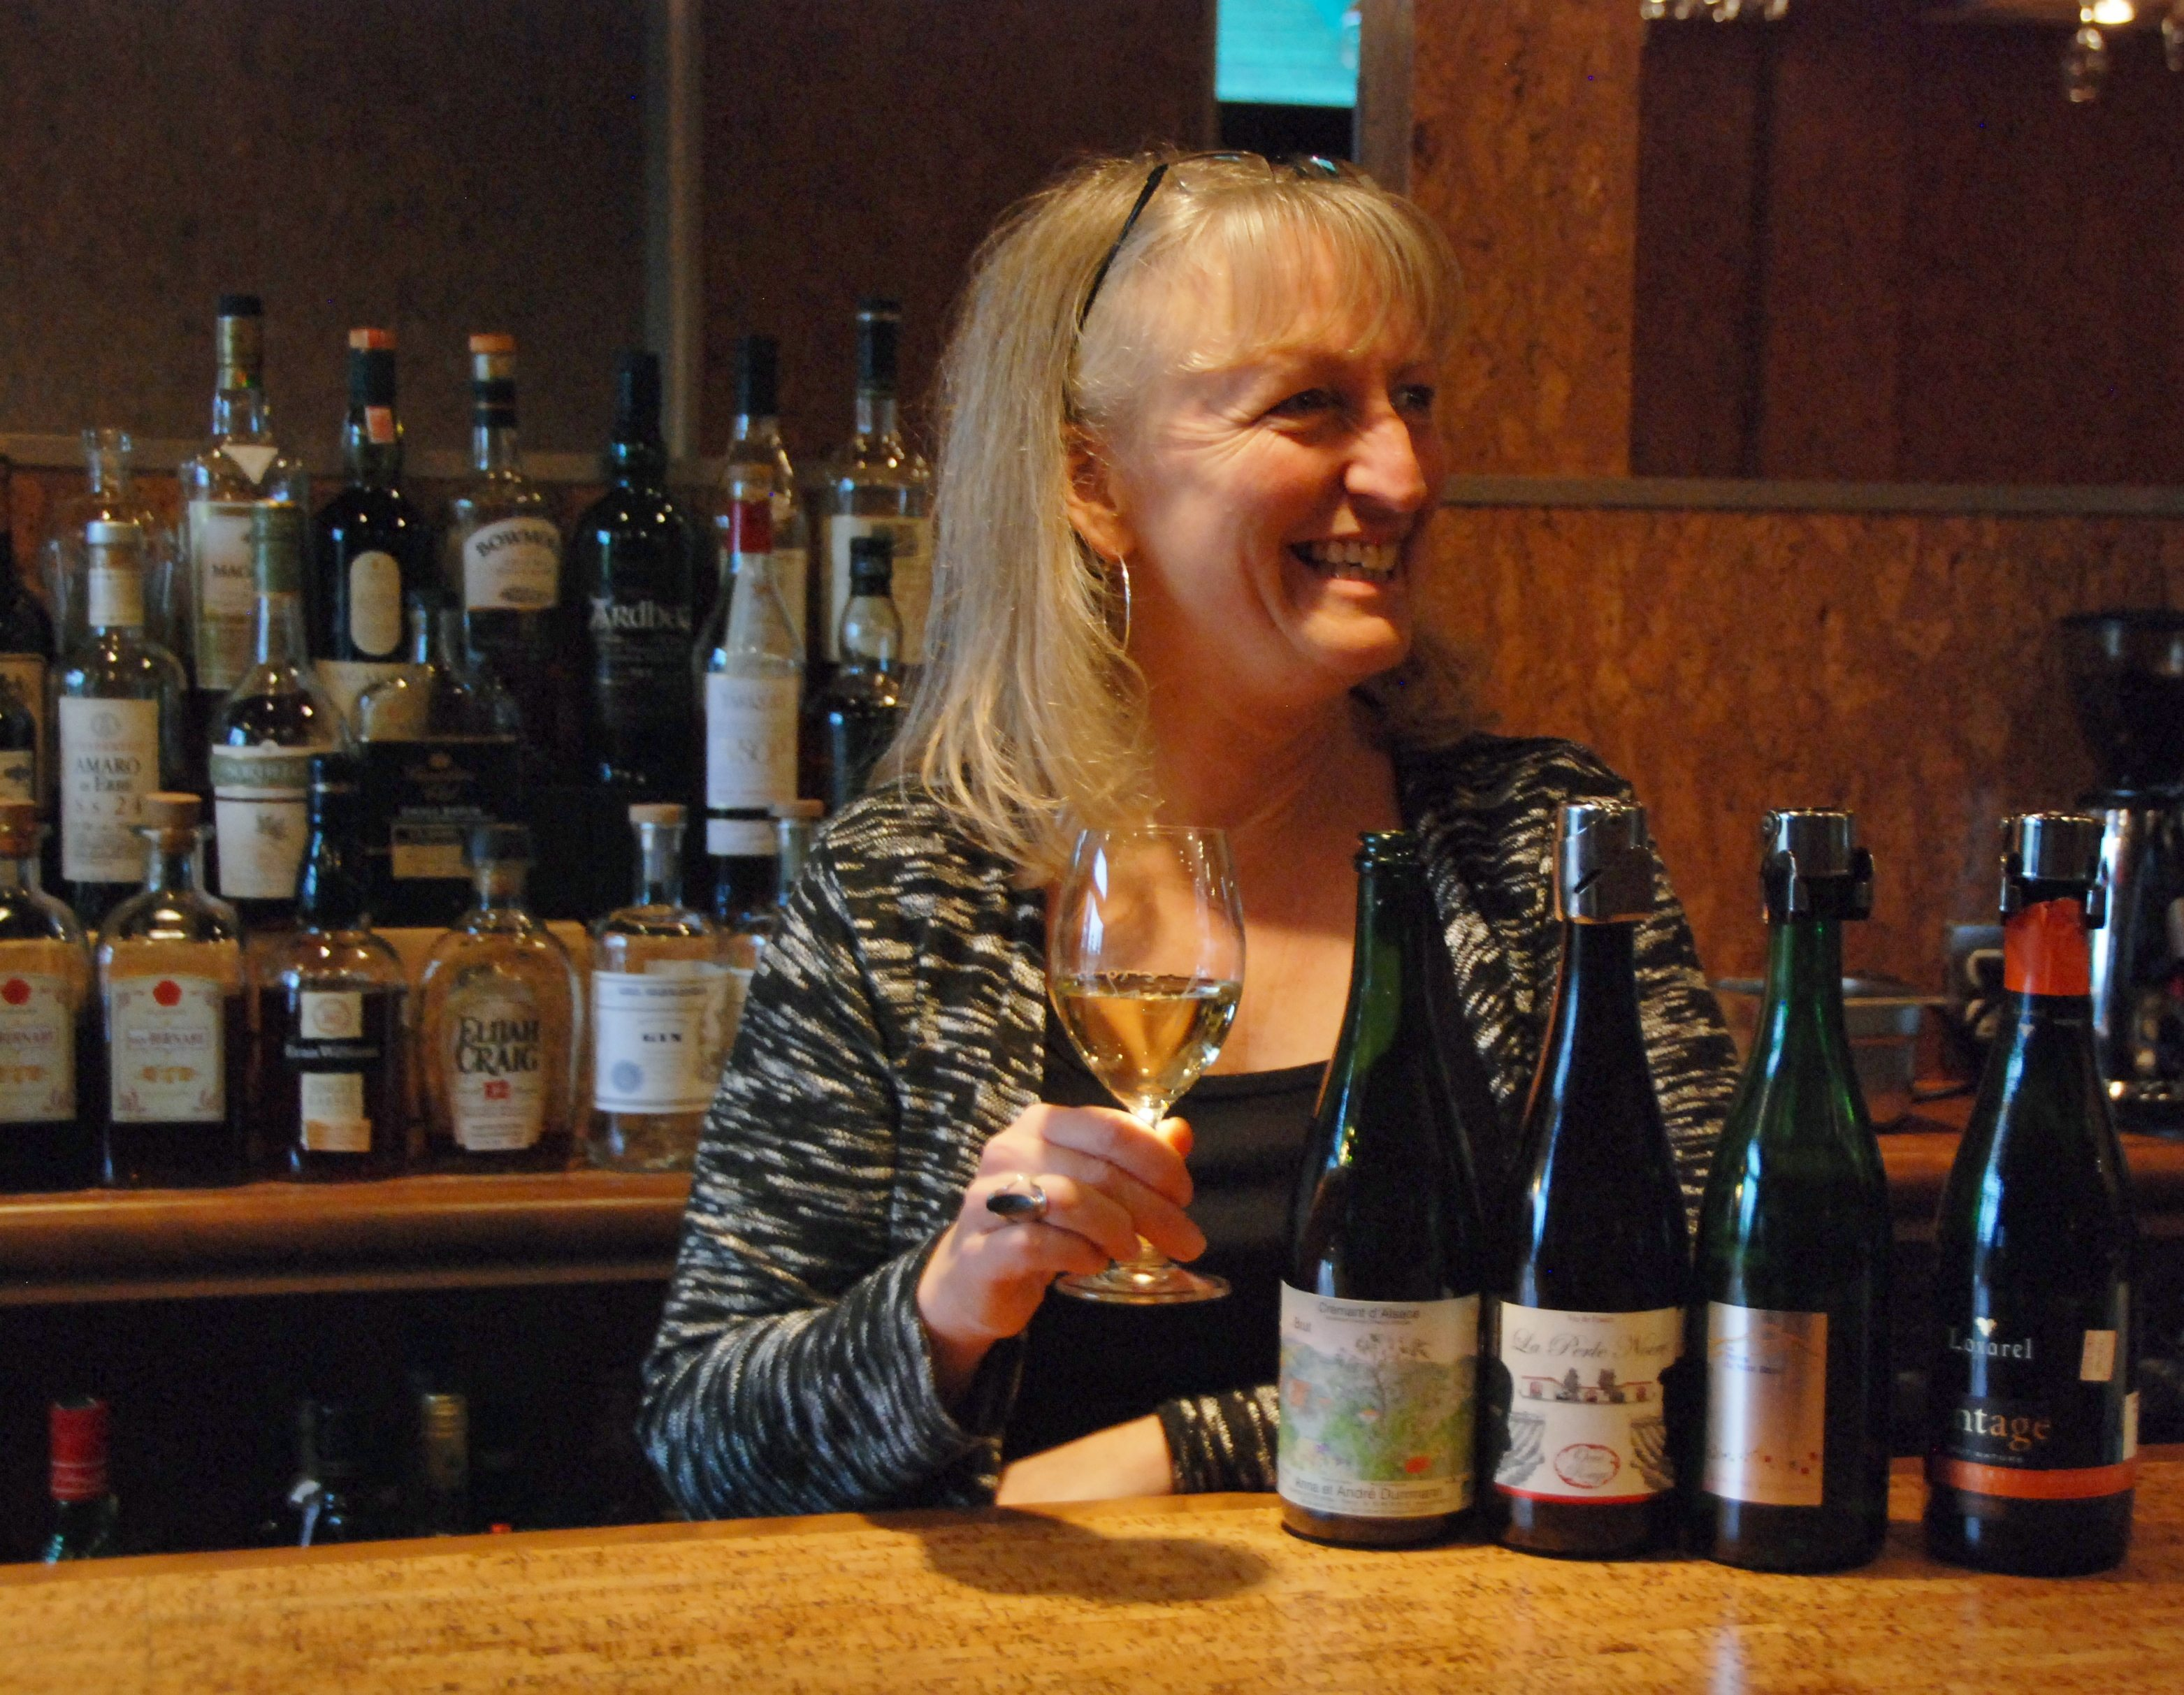 Véronique Rivest recommends serving sparkling wines in regular white wine glasses, allowing you to swirl the wine and enjoy the aroma and taste more fully. Photo by Katie Shapiro, Ottawa Magazine.